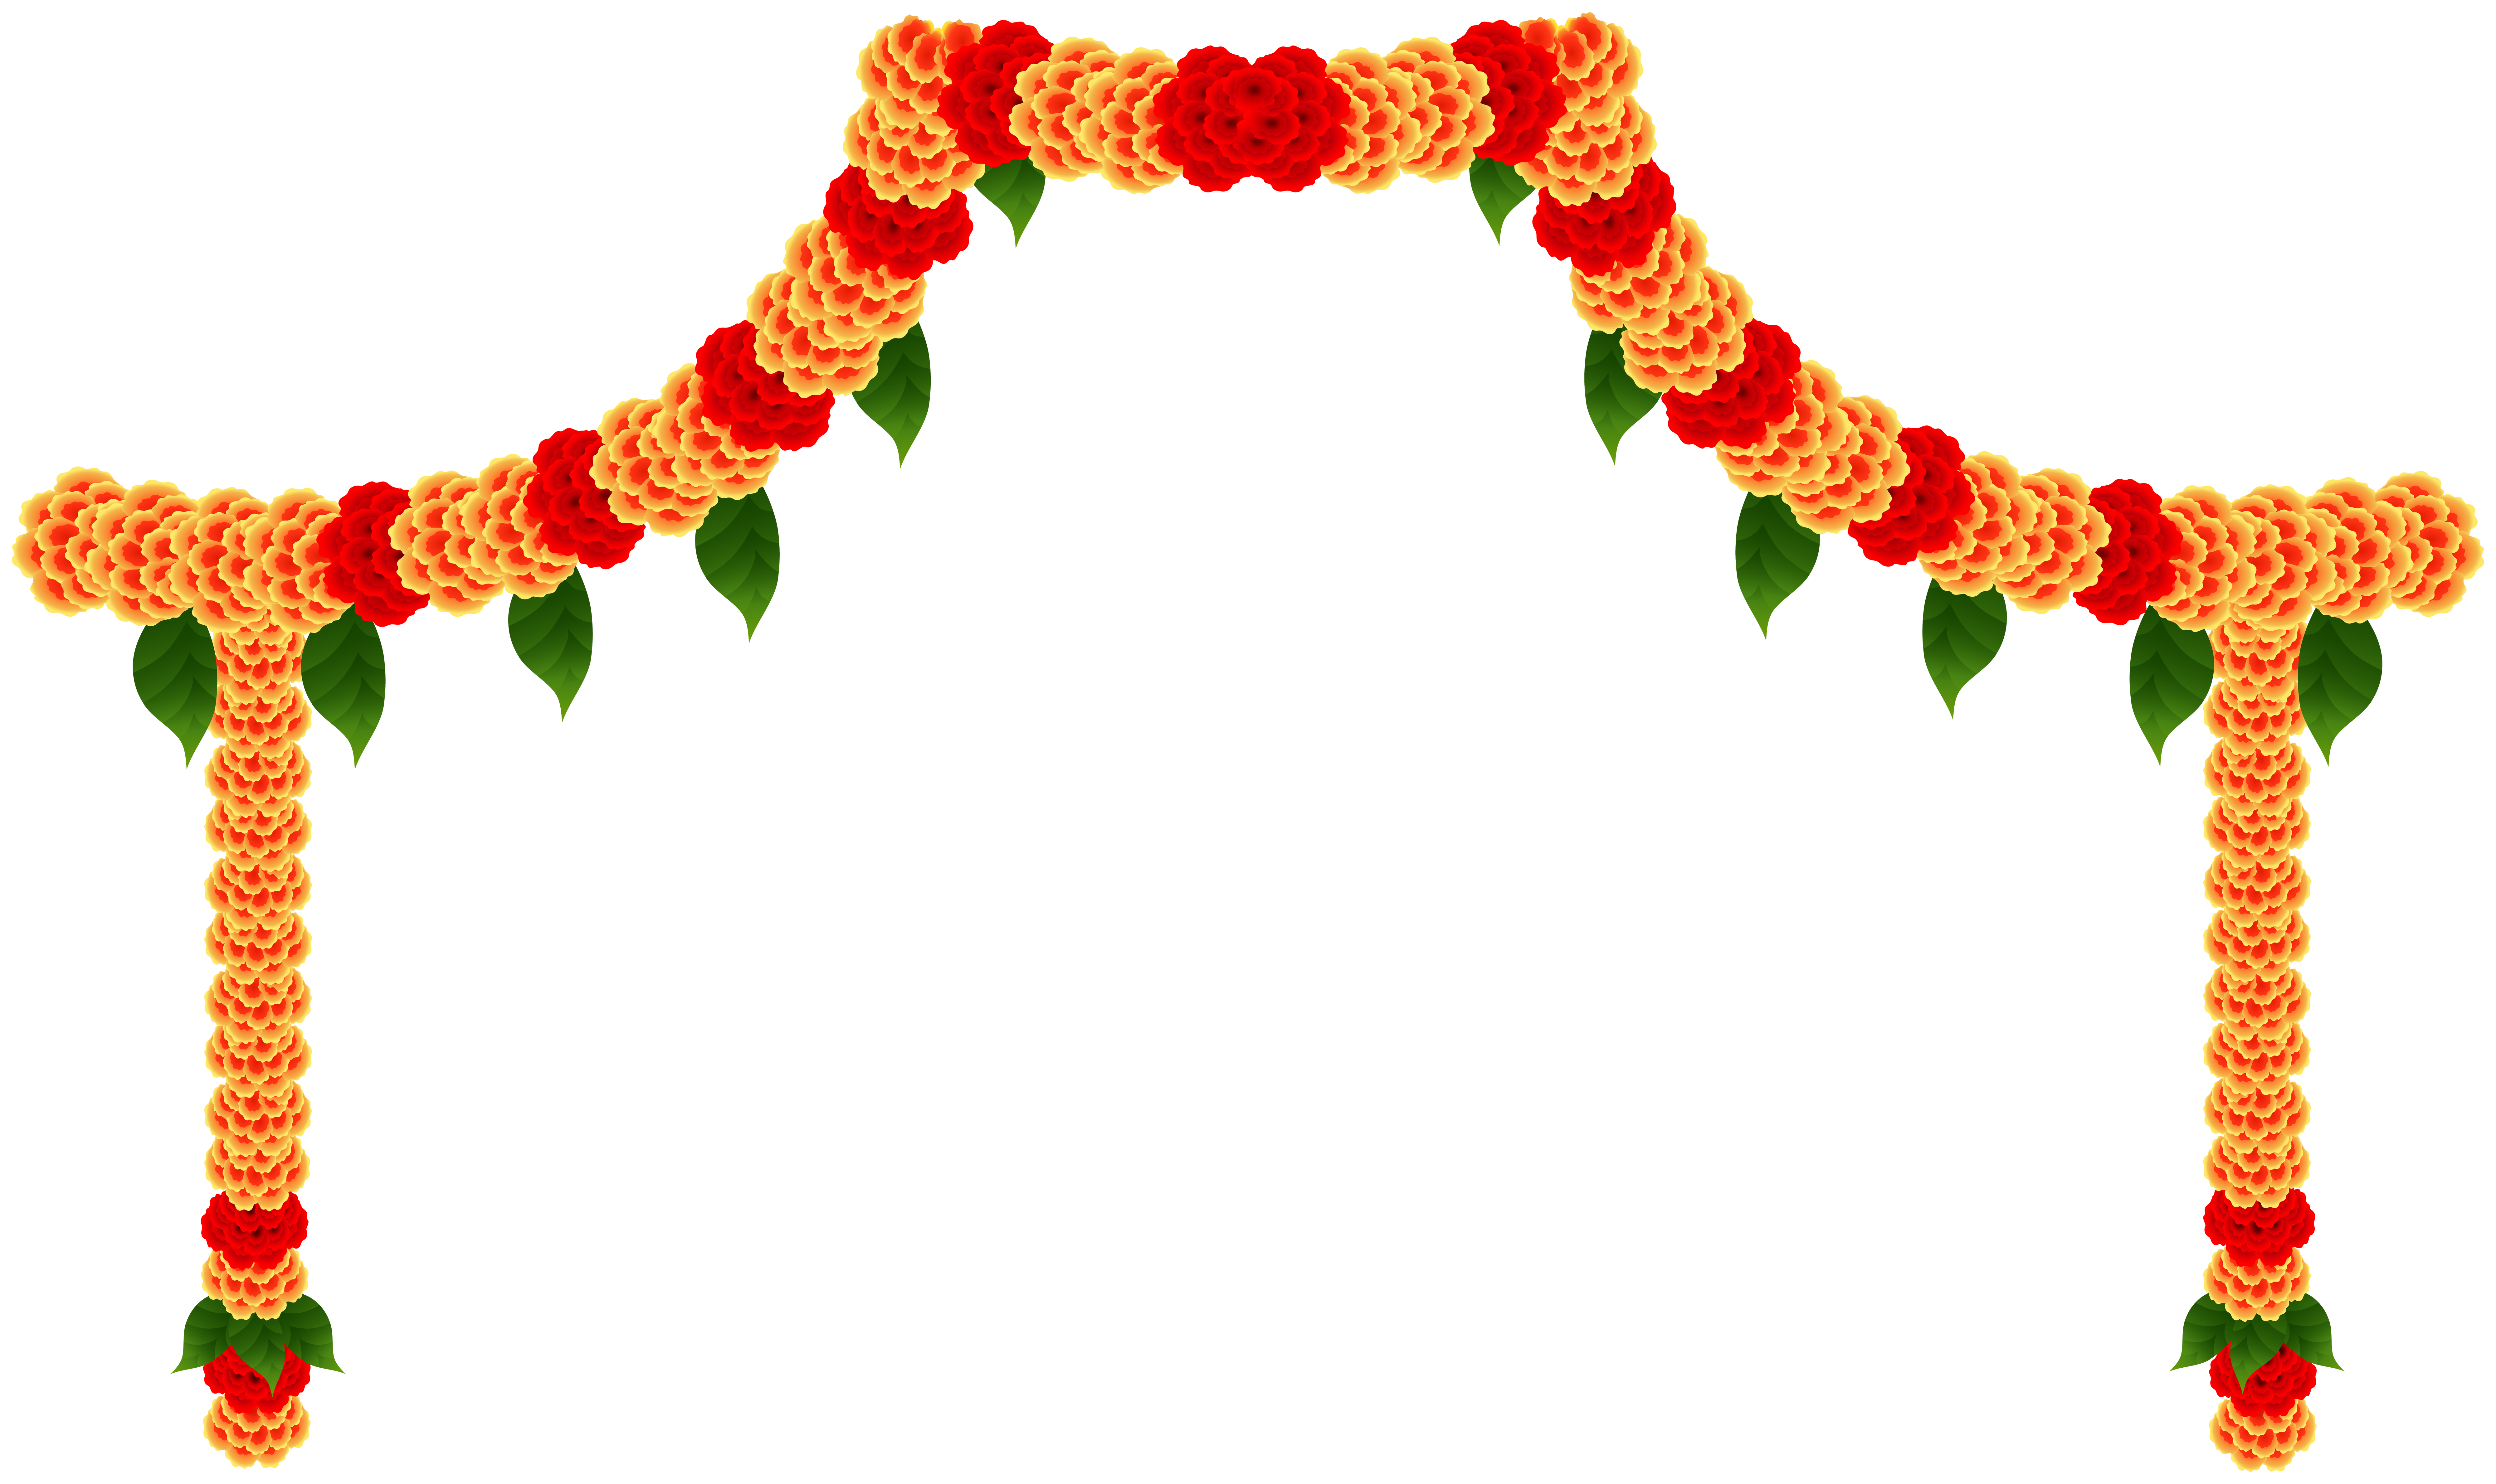 India Floral Decor Clip Art Image Gallery Yopriceville High Quality Images And Transparent Png Free Clipart Banner Clip Art Free Clip Art Wedding Symbols